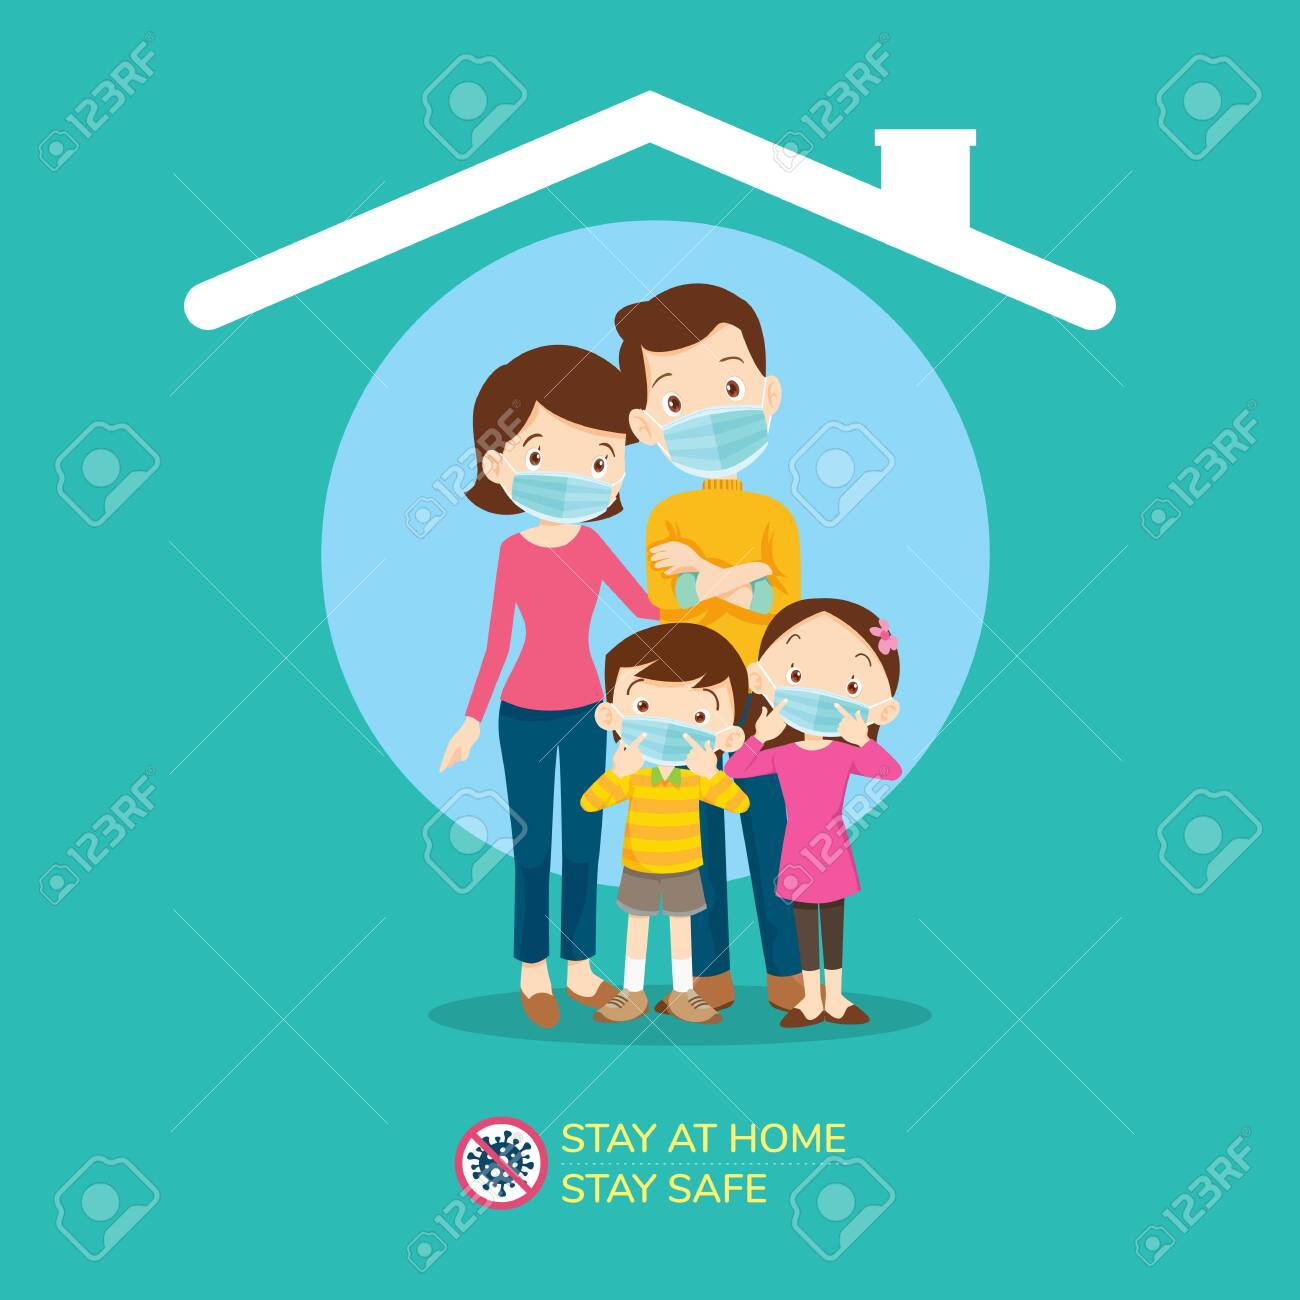 stay at home stay safe,Corona virus ,covid-19 campaign to stay at home.Dad Mom Daughter Son wearing a surgical mask in house icon. lifestyle activity that you can do at home to stay healthy. - 143489378